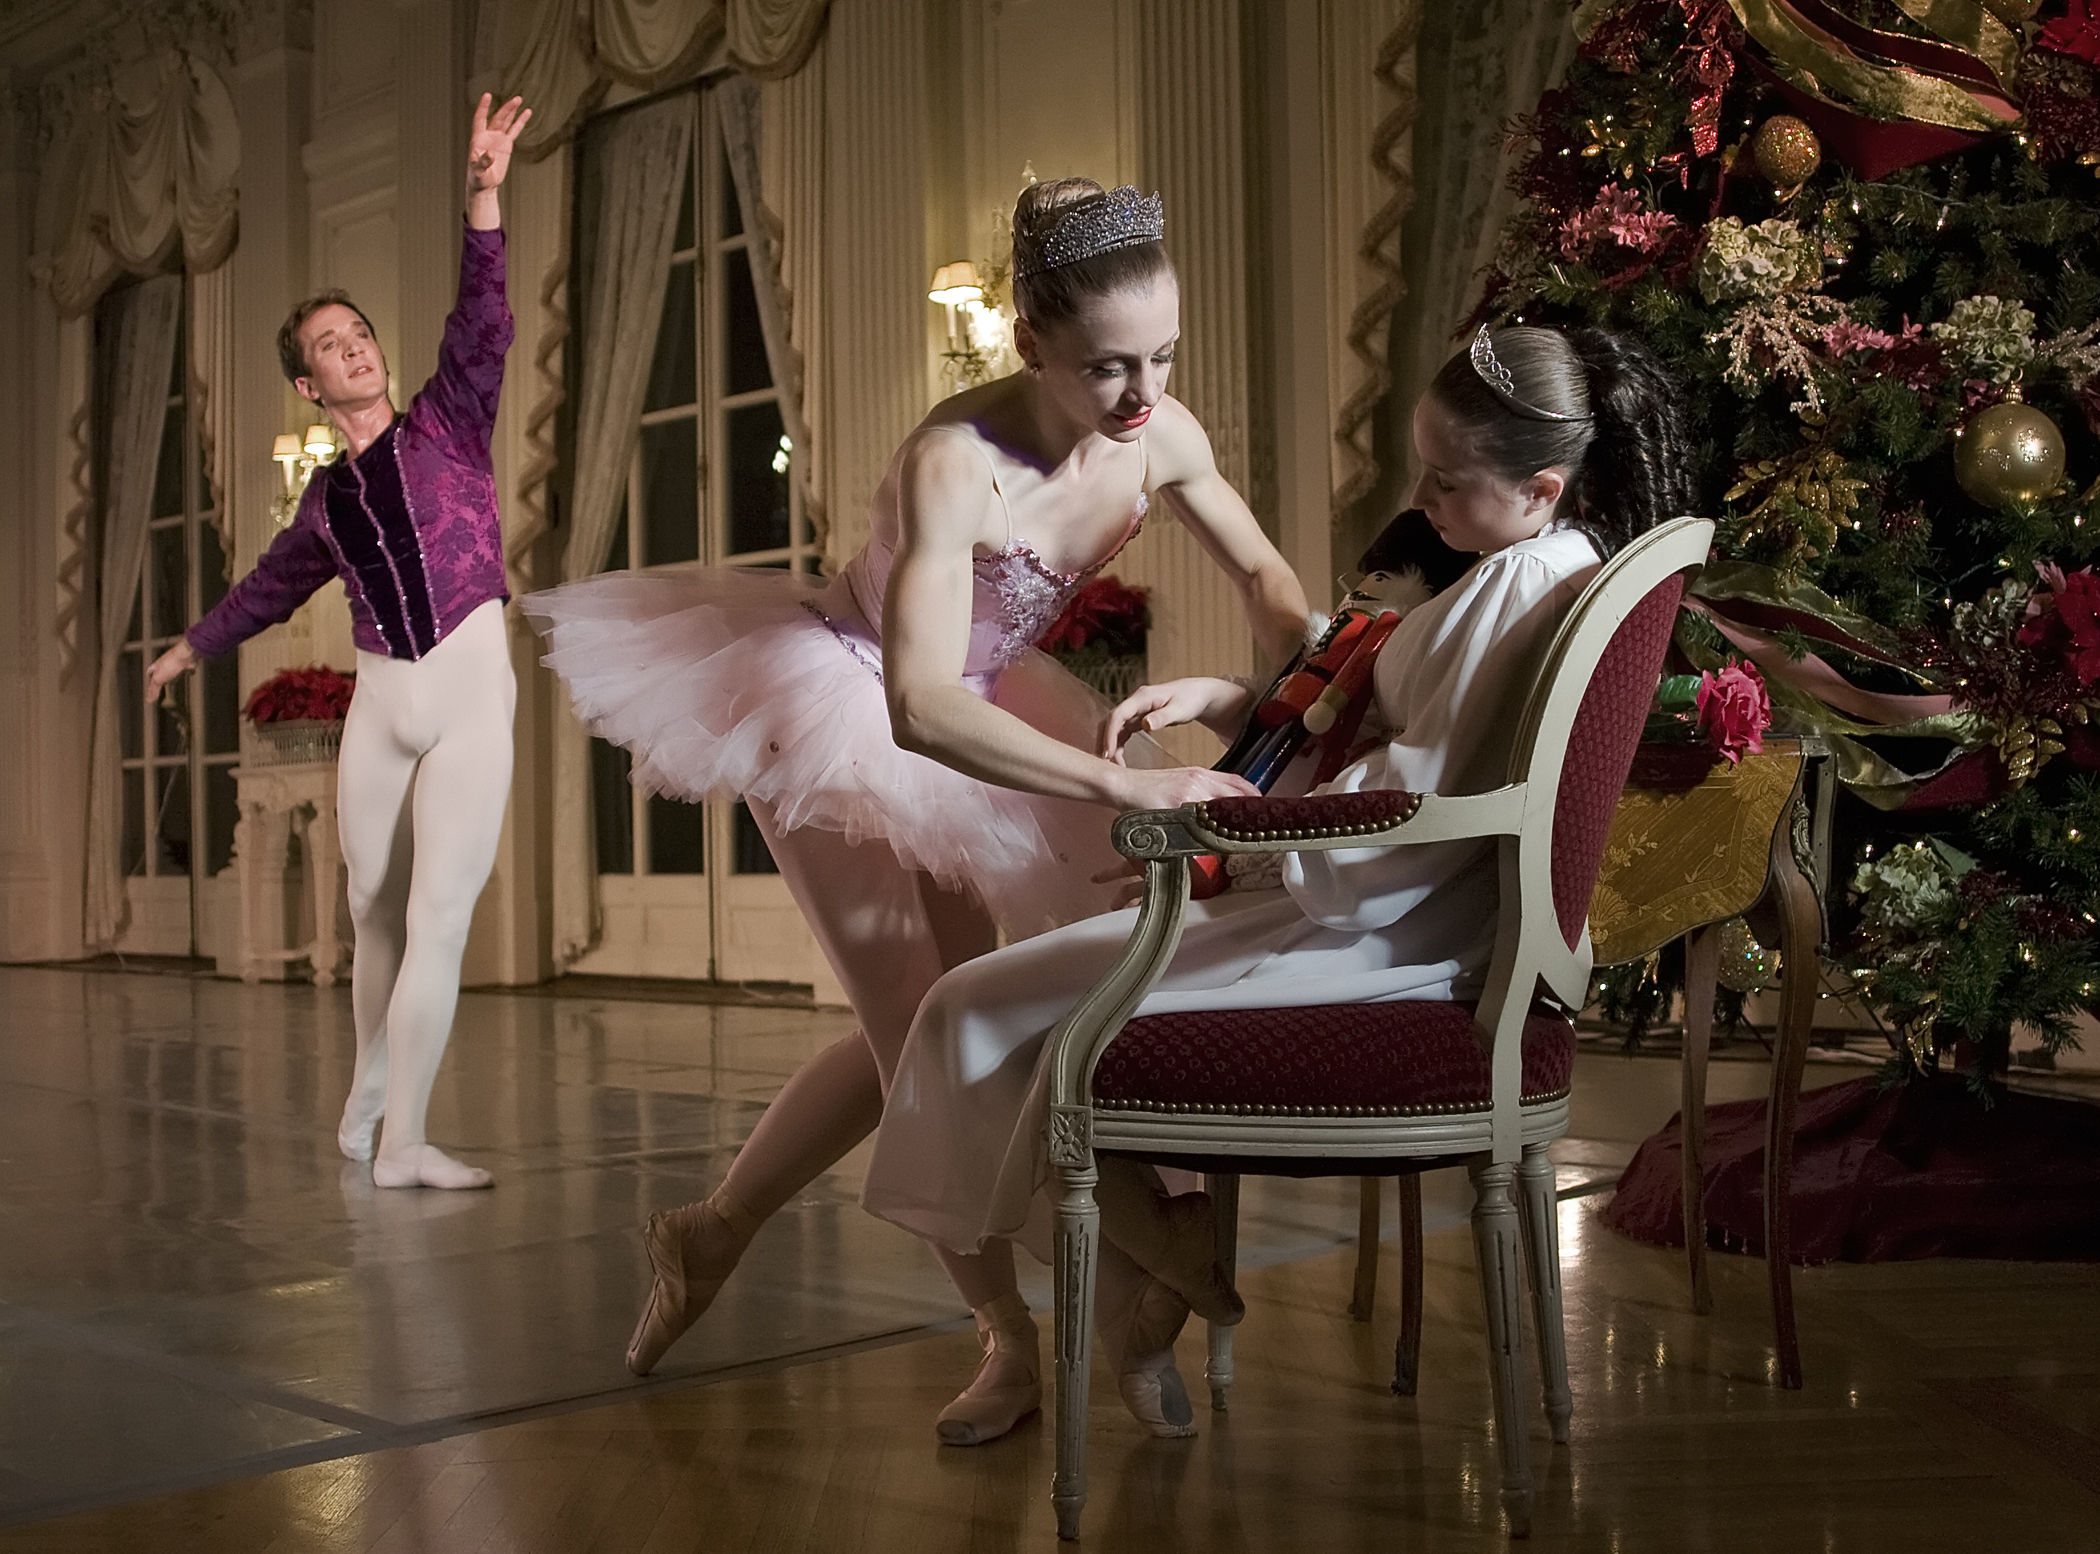 Gregg Saulnier as the Cavalier watches as Danielle Genest as the Sugarplum Fairy place the Nutcracker on the lap of the sleeping Tess (Hayden Maguire) in Island Moving Co.'s Newport Nutcracker at Rosecliff.